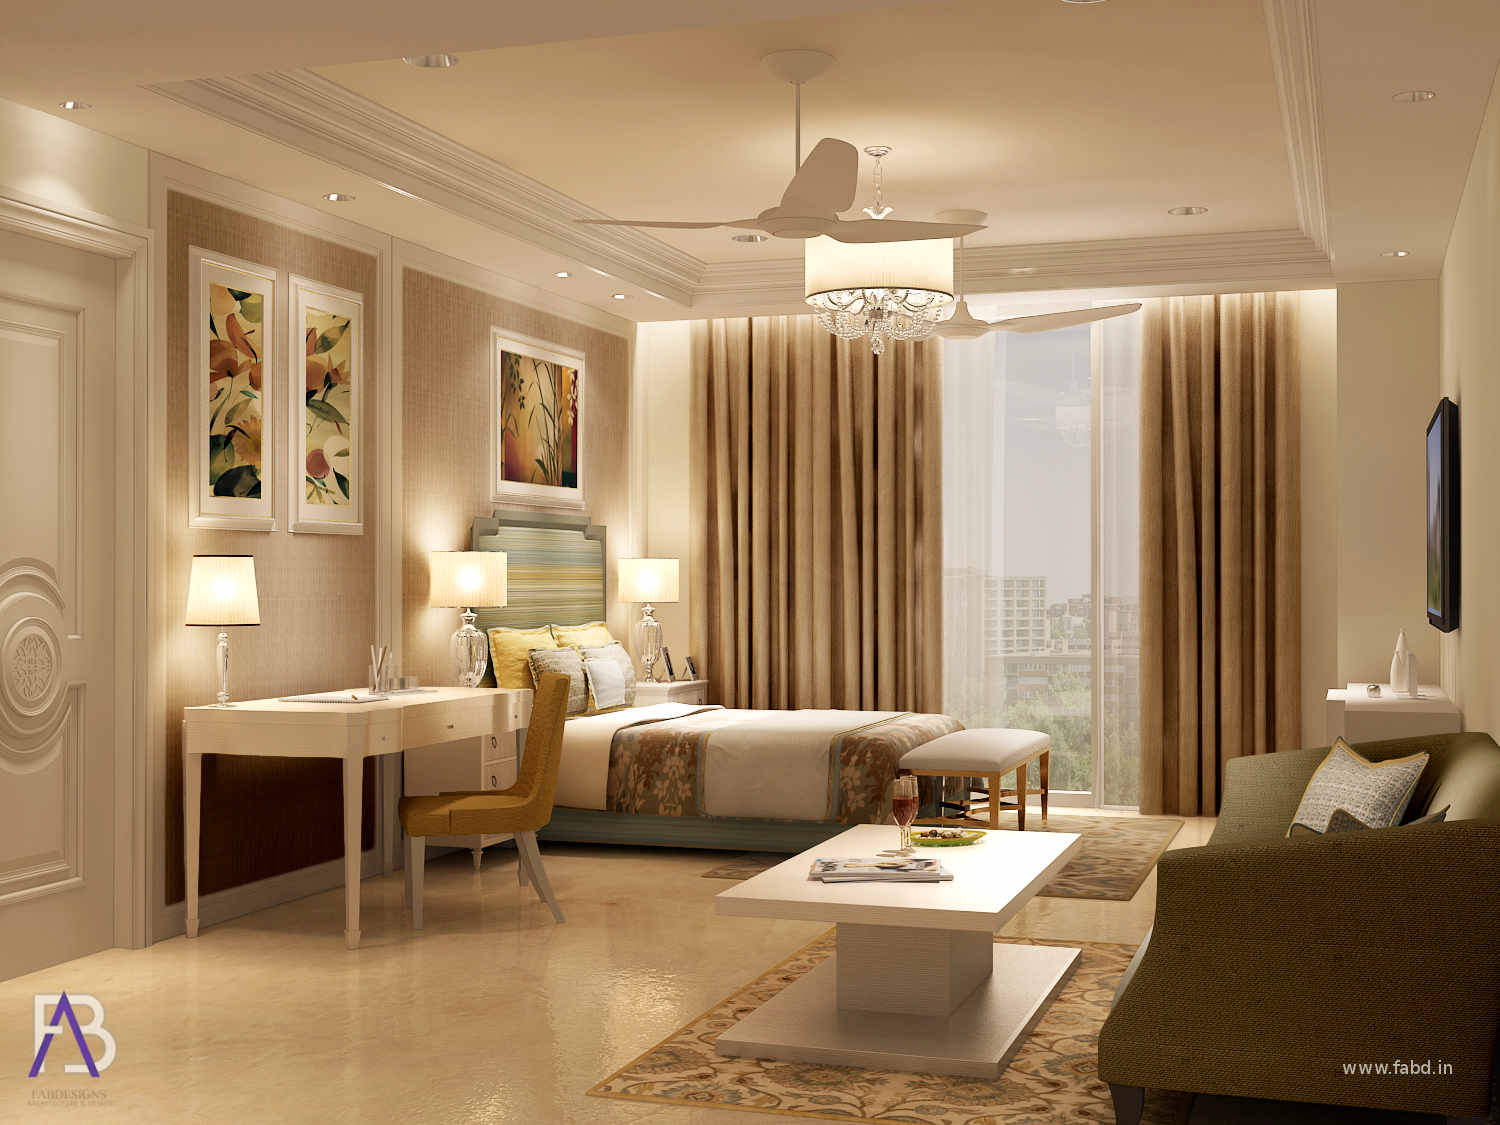 Bedroom Area Interior Rendering